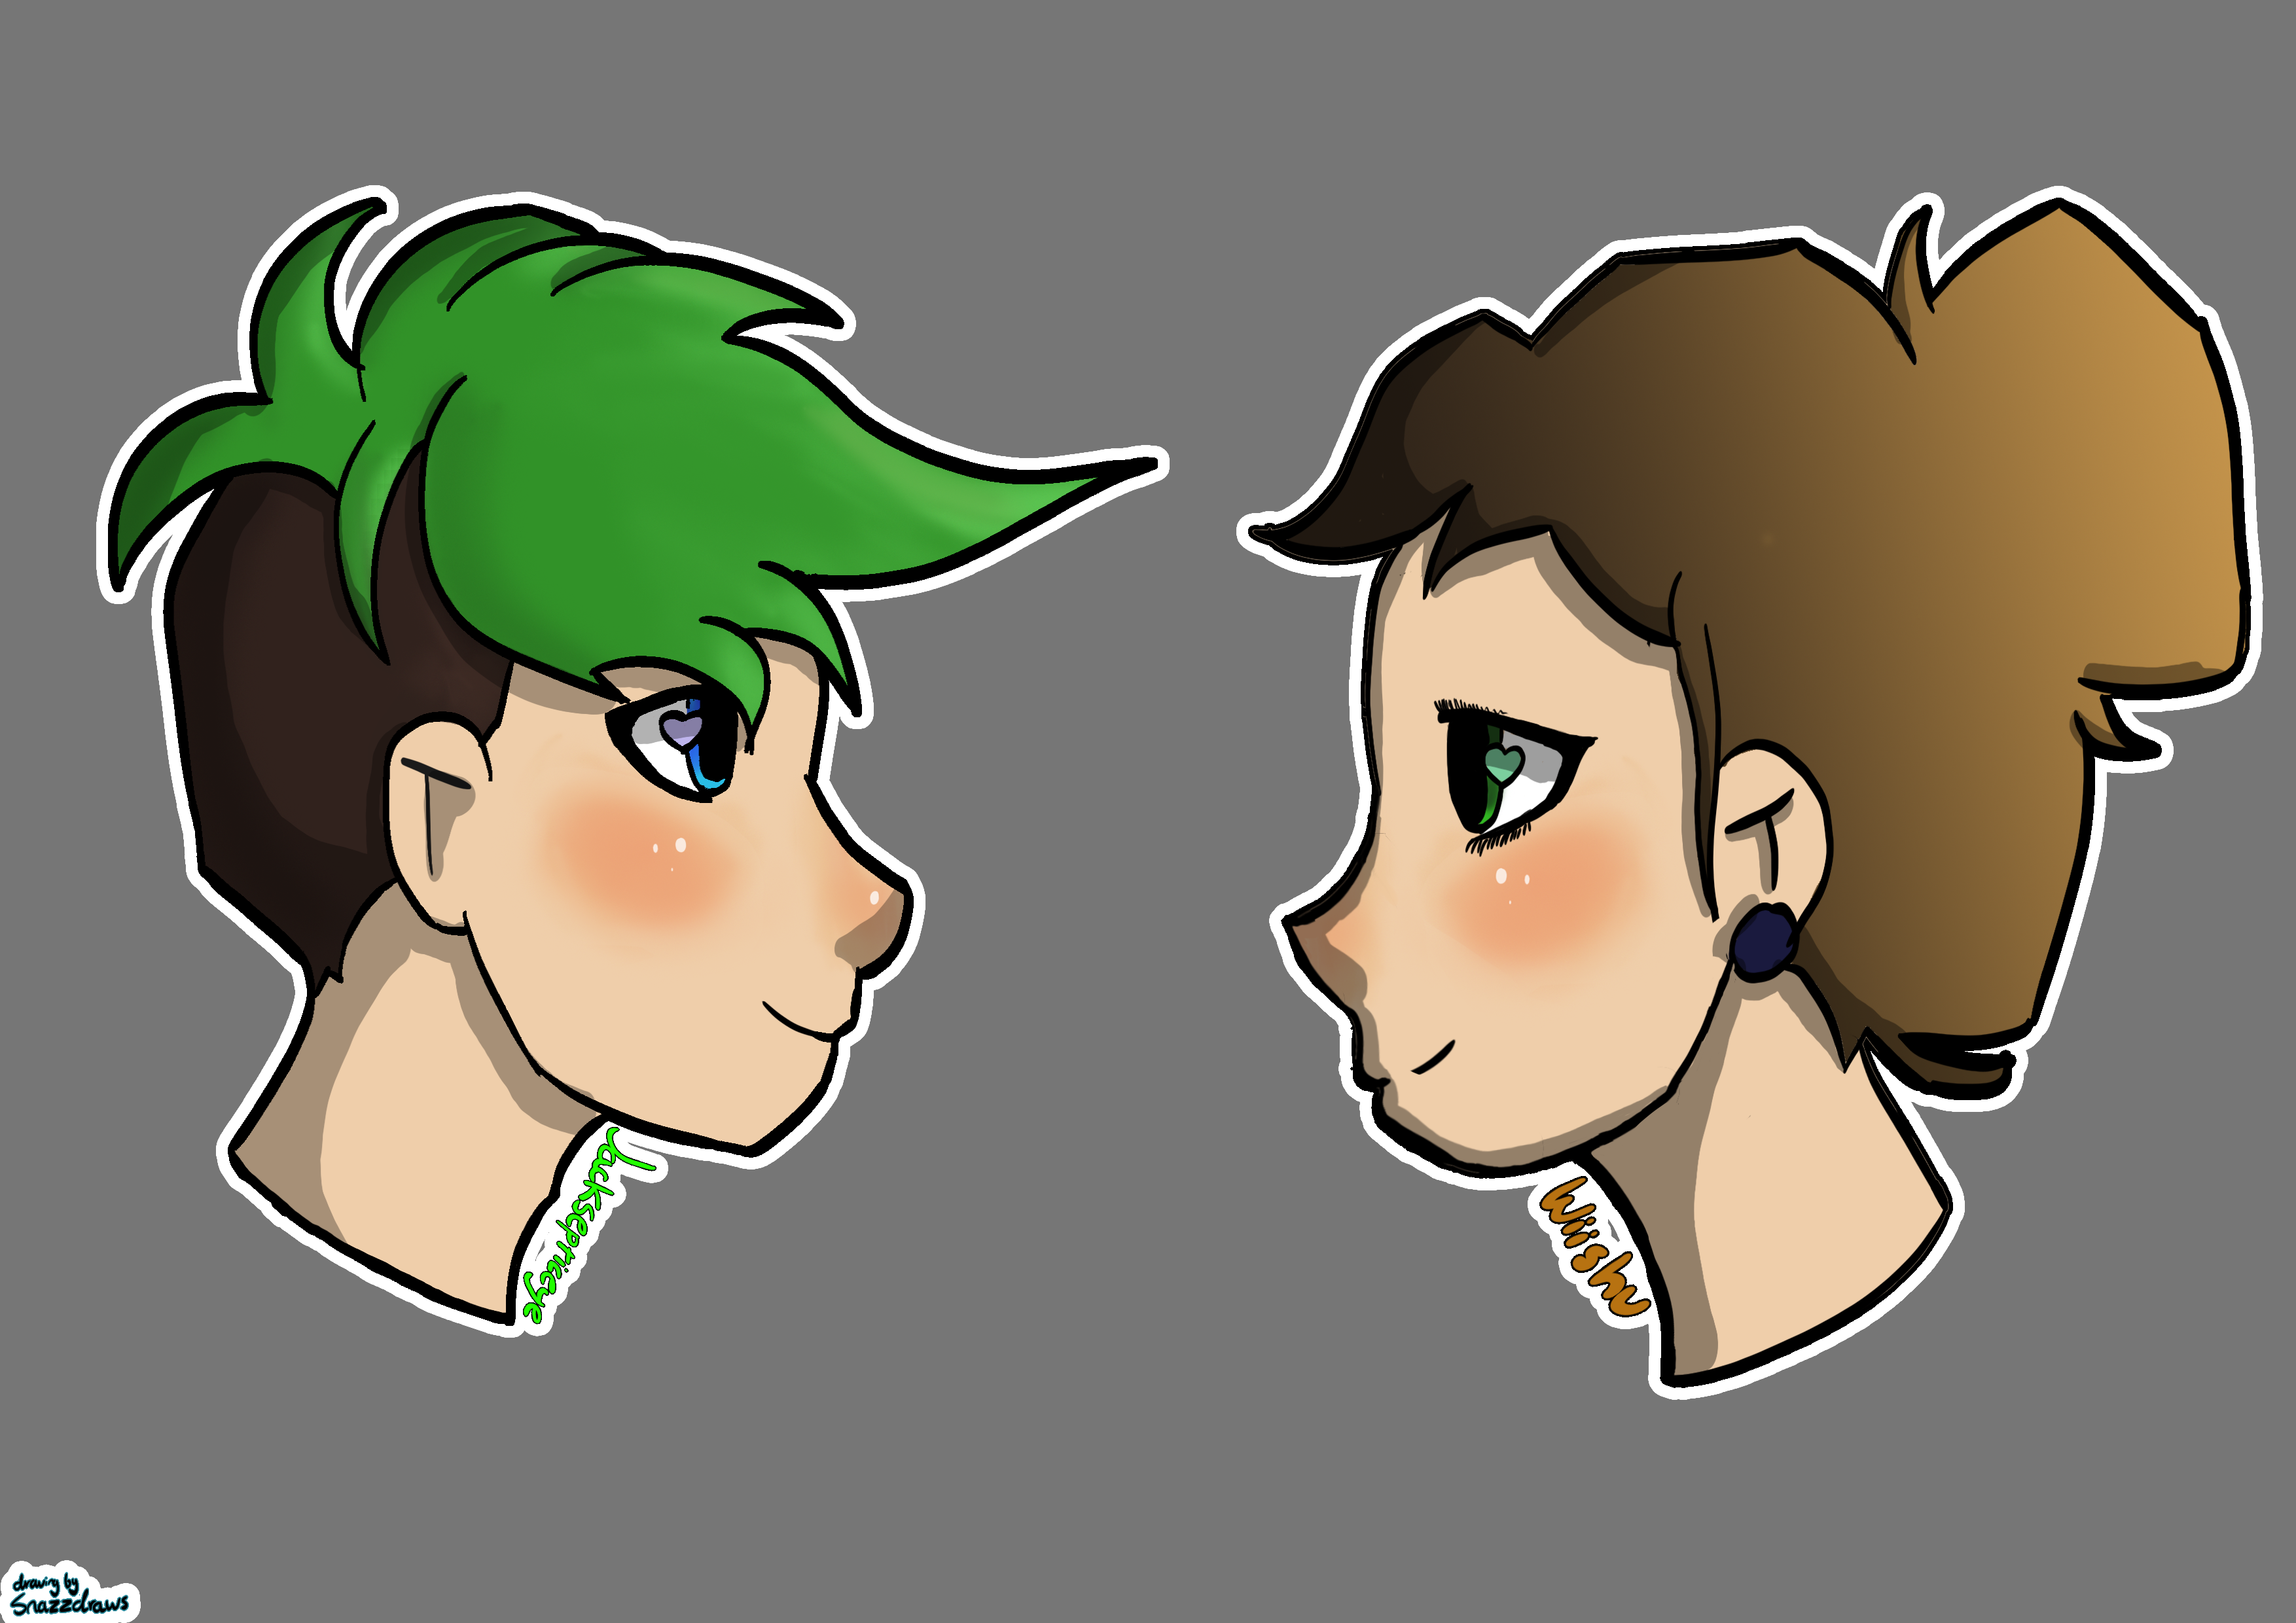 Wiishu and Jacksepticye